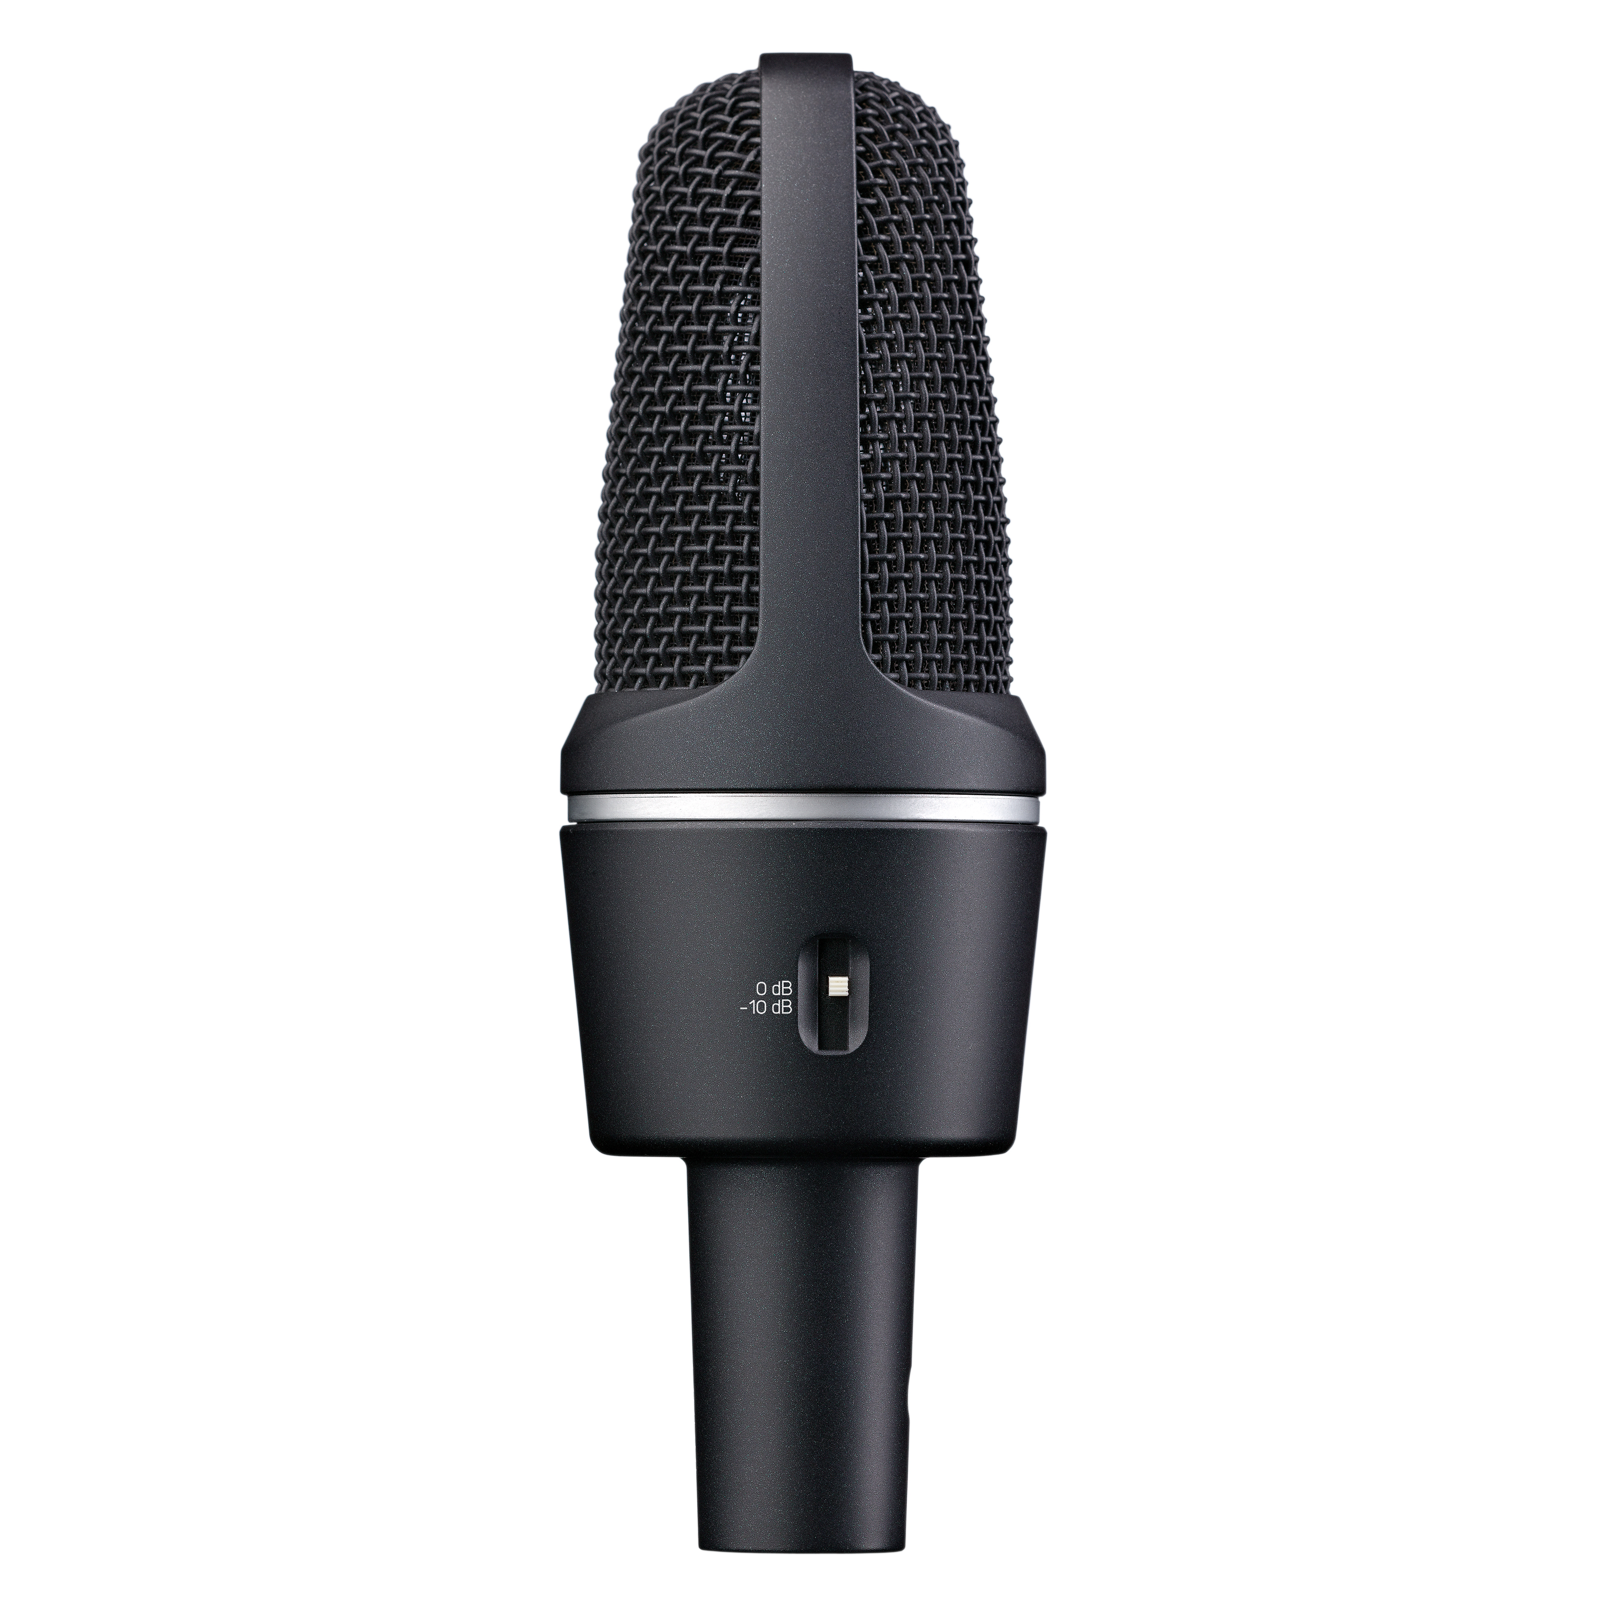 C3000 - Black - High-performance large-diaphragm condenser microphone - Detailshot 1